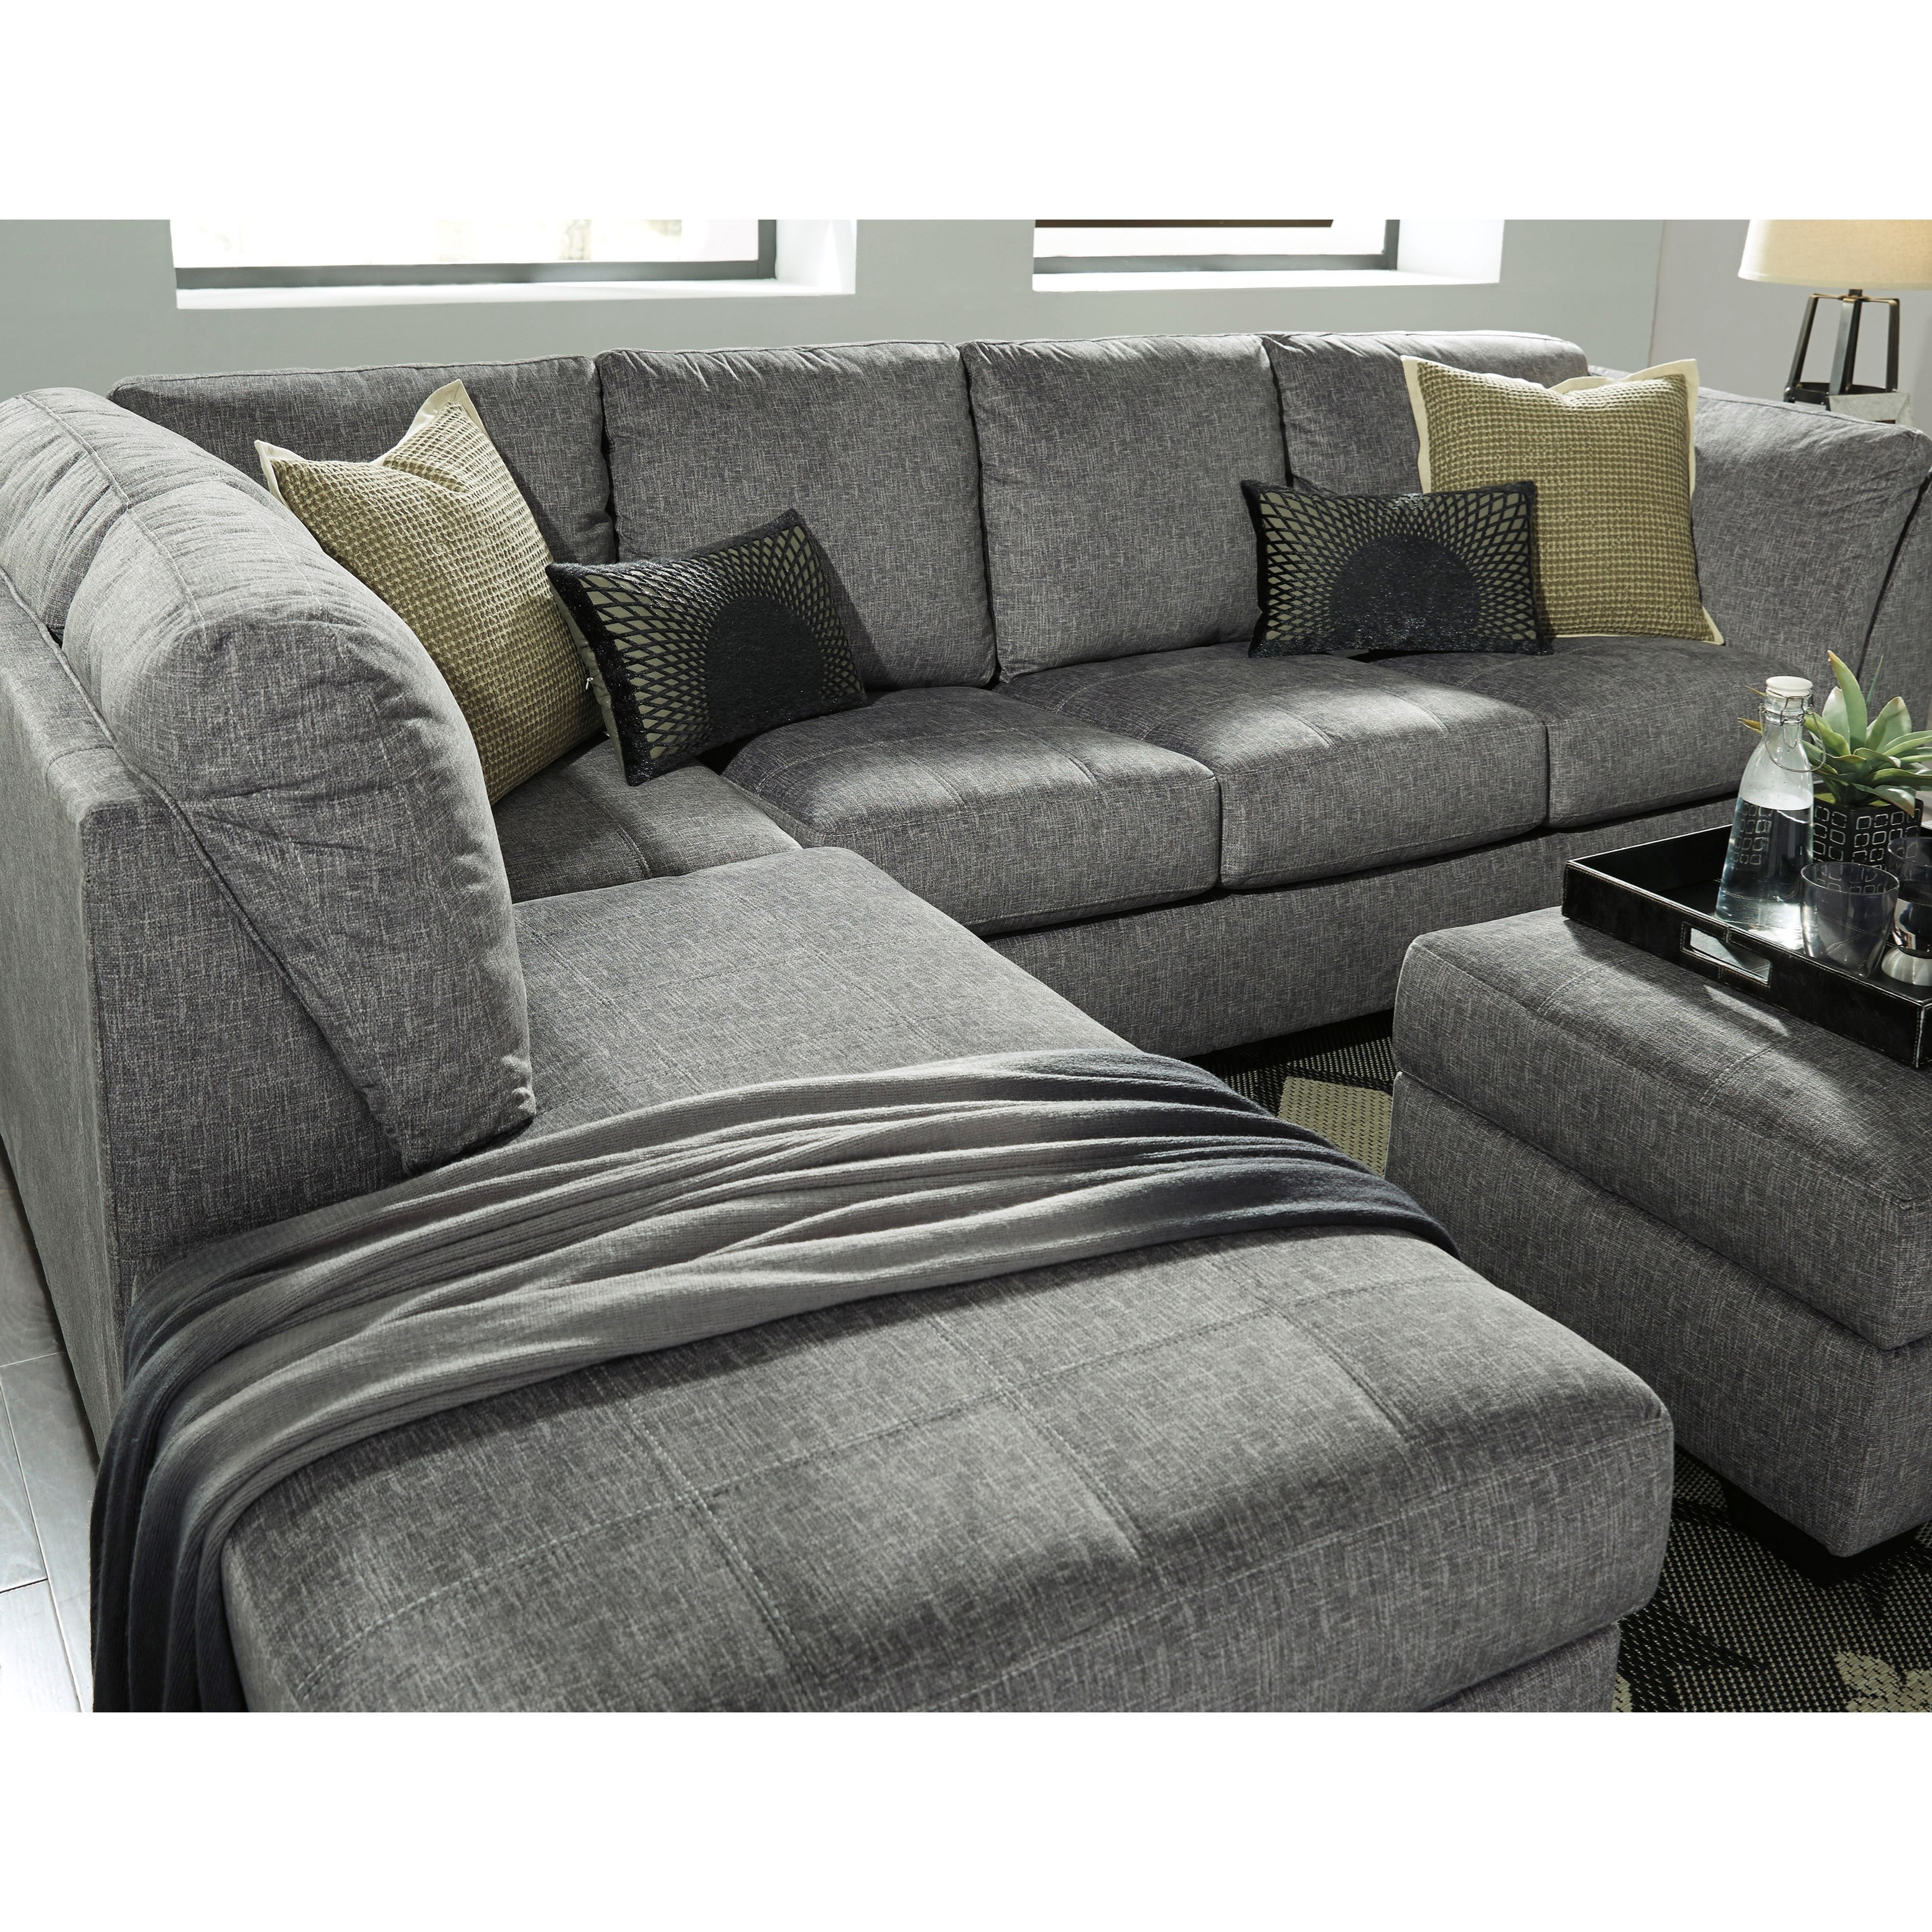 Benchcraft by ashley belcastel 2 piece sectional with left for 2 piece sectional sofa ashley